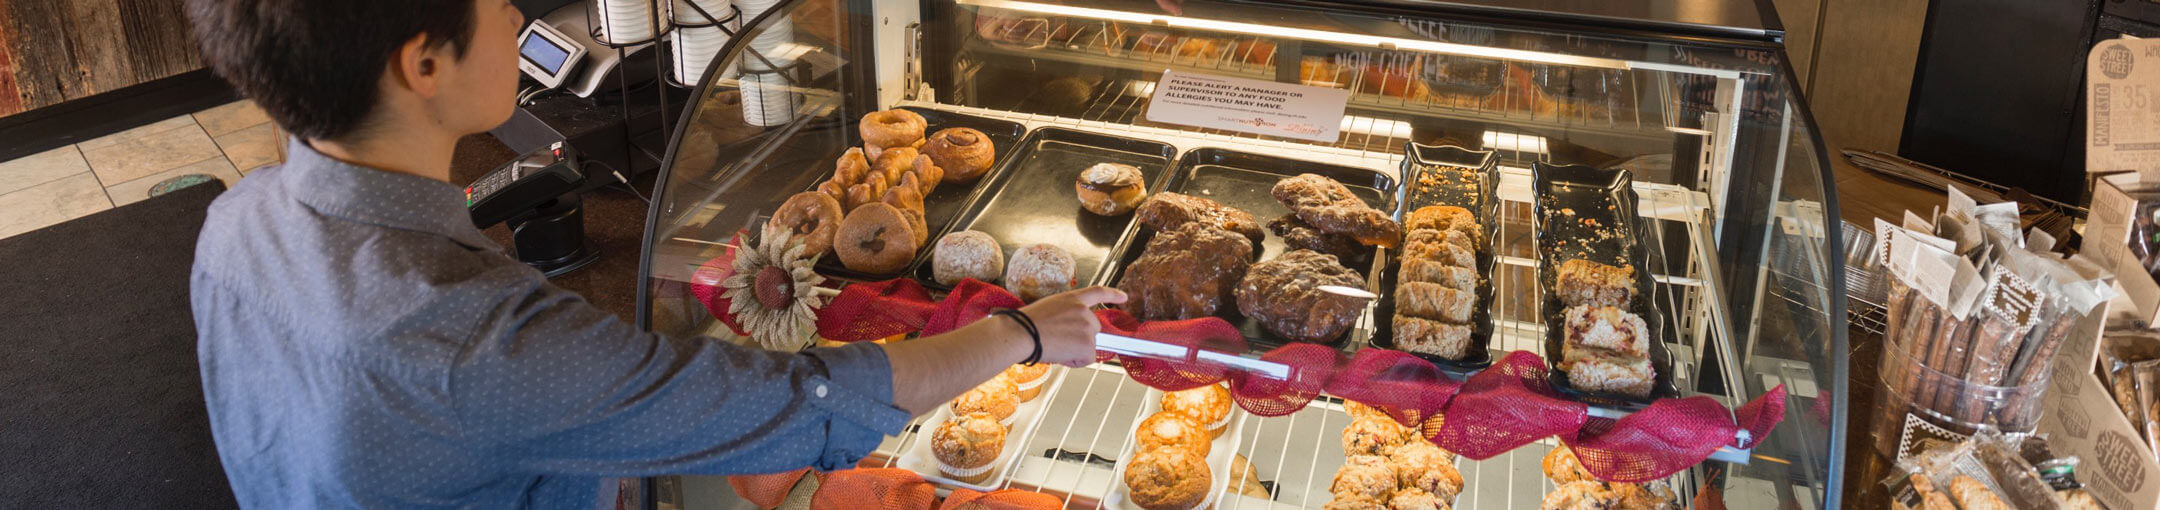 A person pointing to a baked good in a display case at the Artesano Bakery and Cafe.